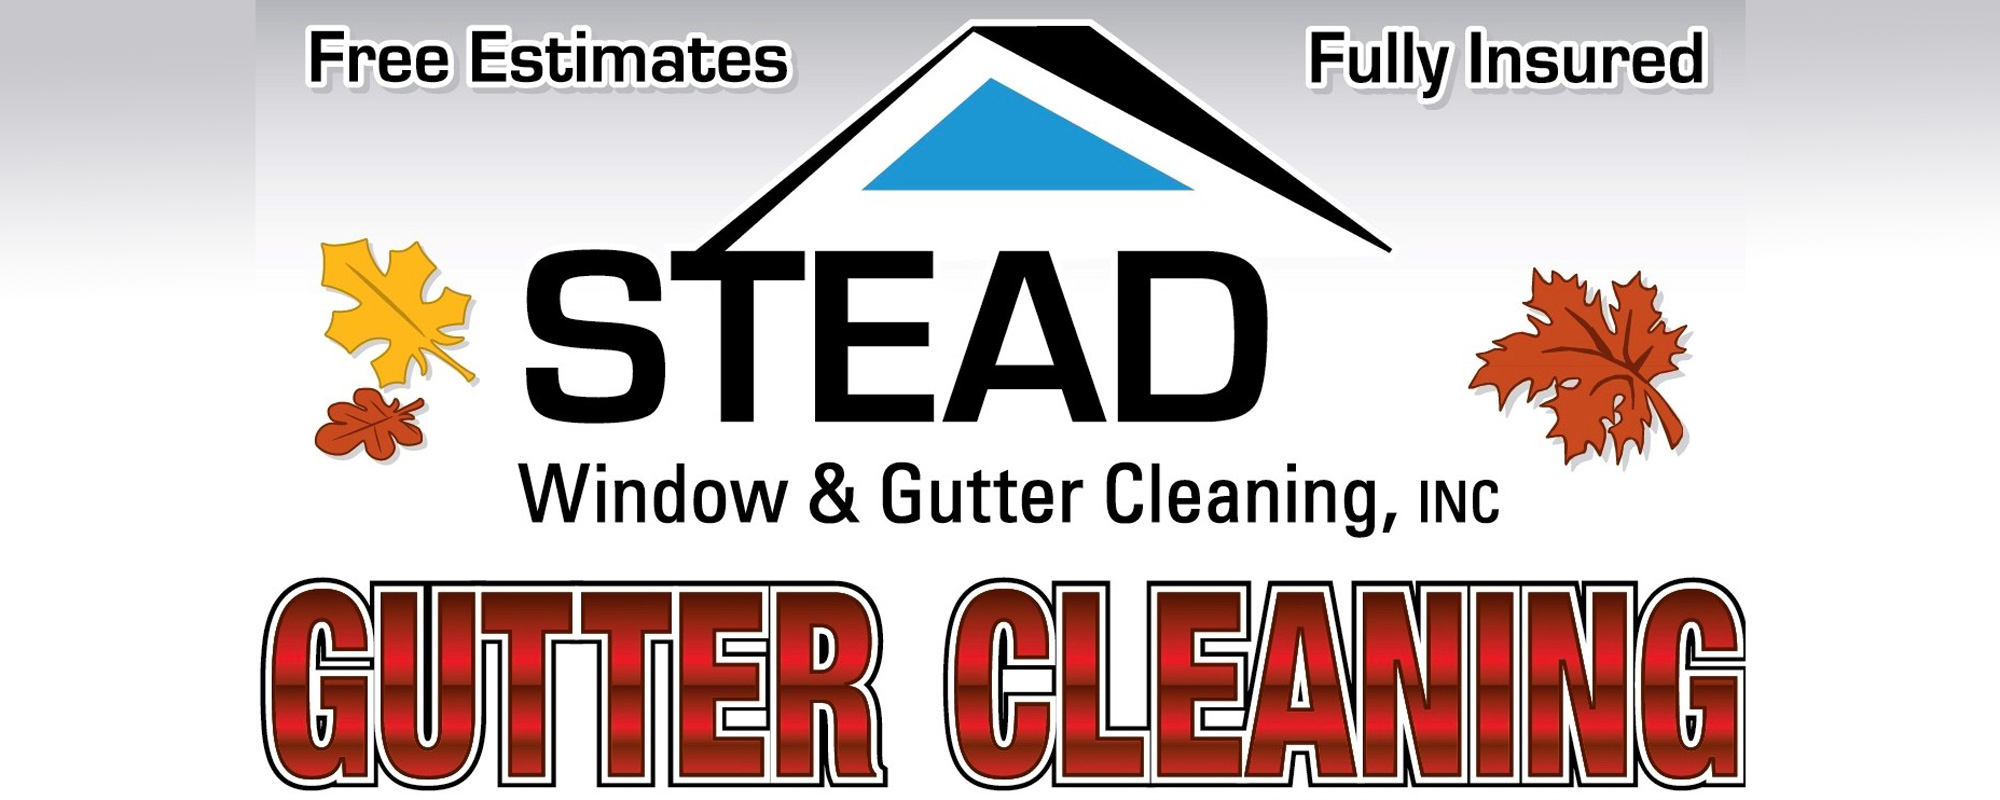 Stead Window & Gutter Cleaning